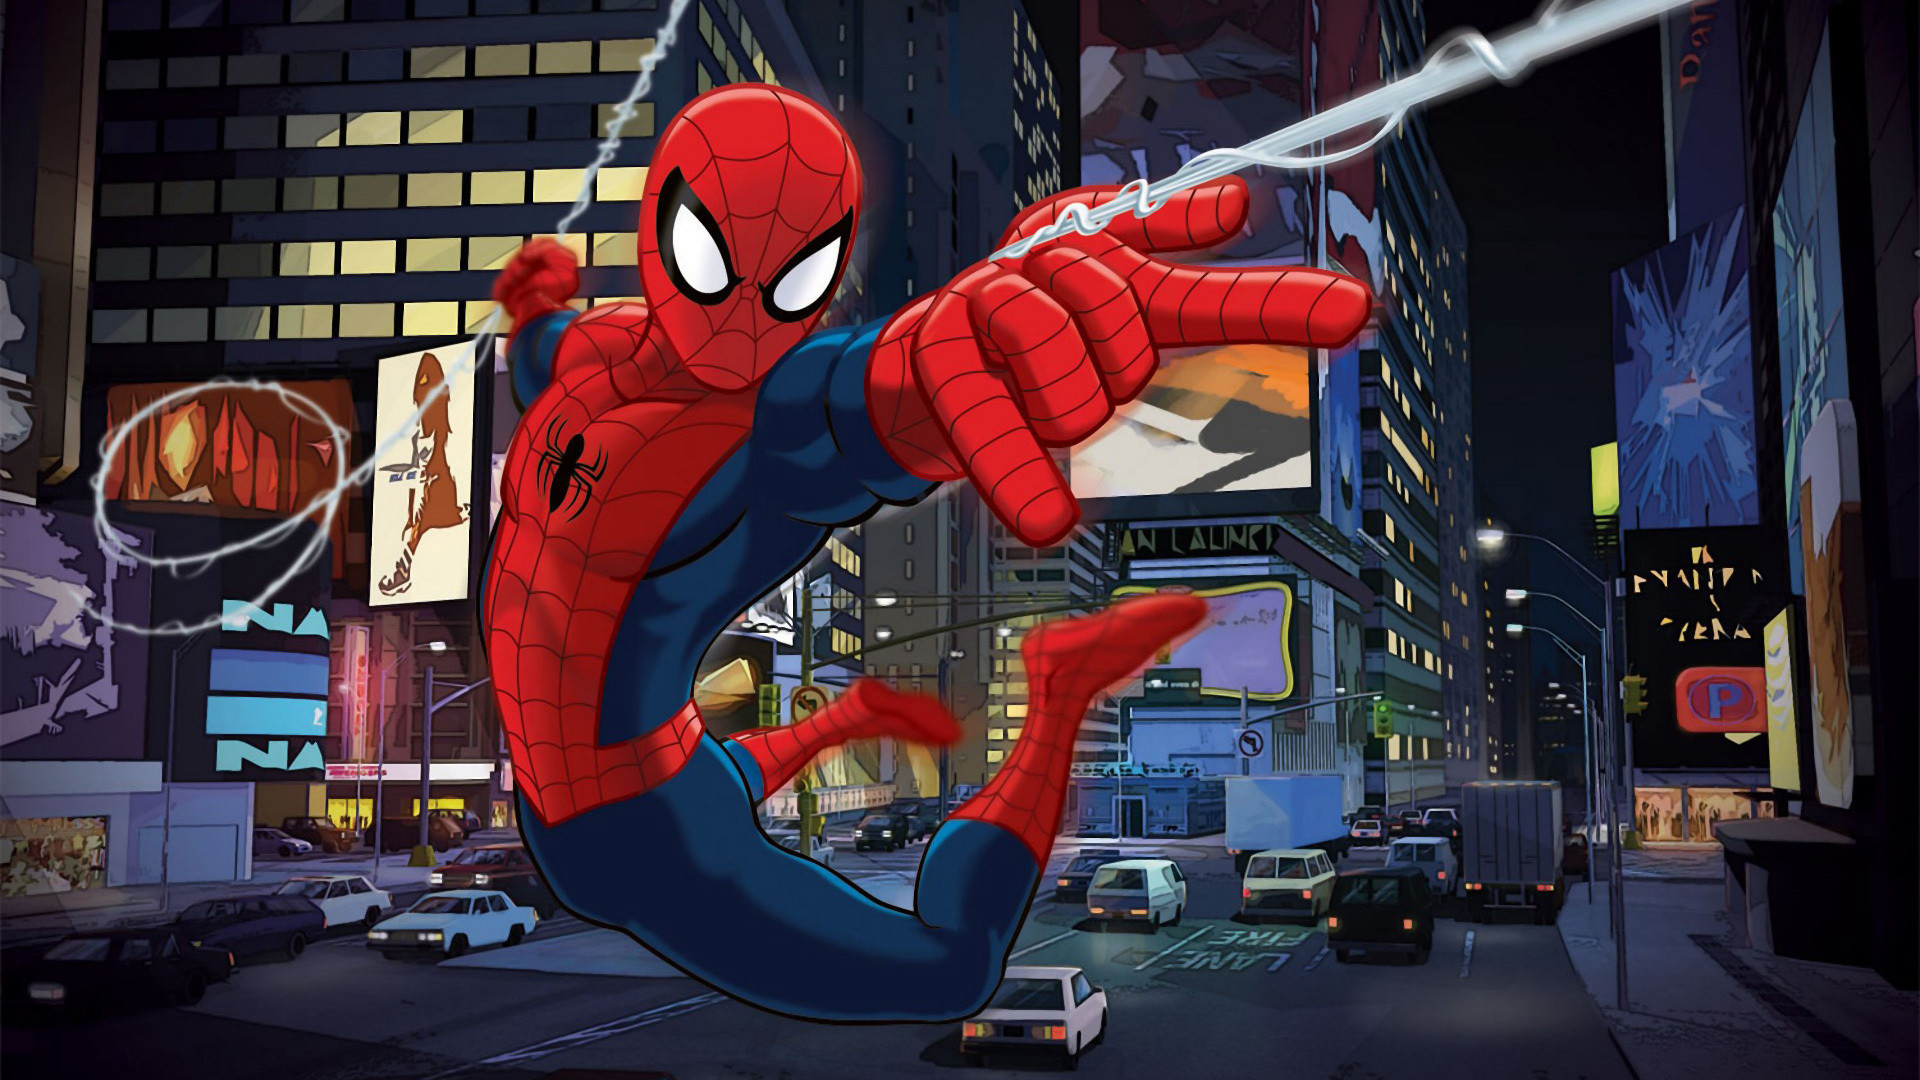 Ultimate spider man hd wallpaper 73 images - Images spiderman ...